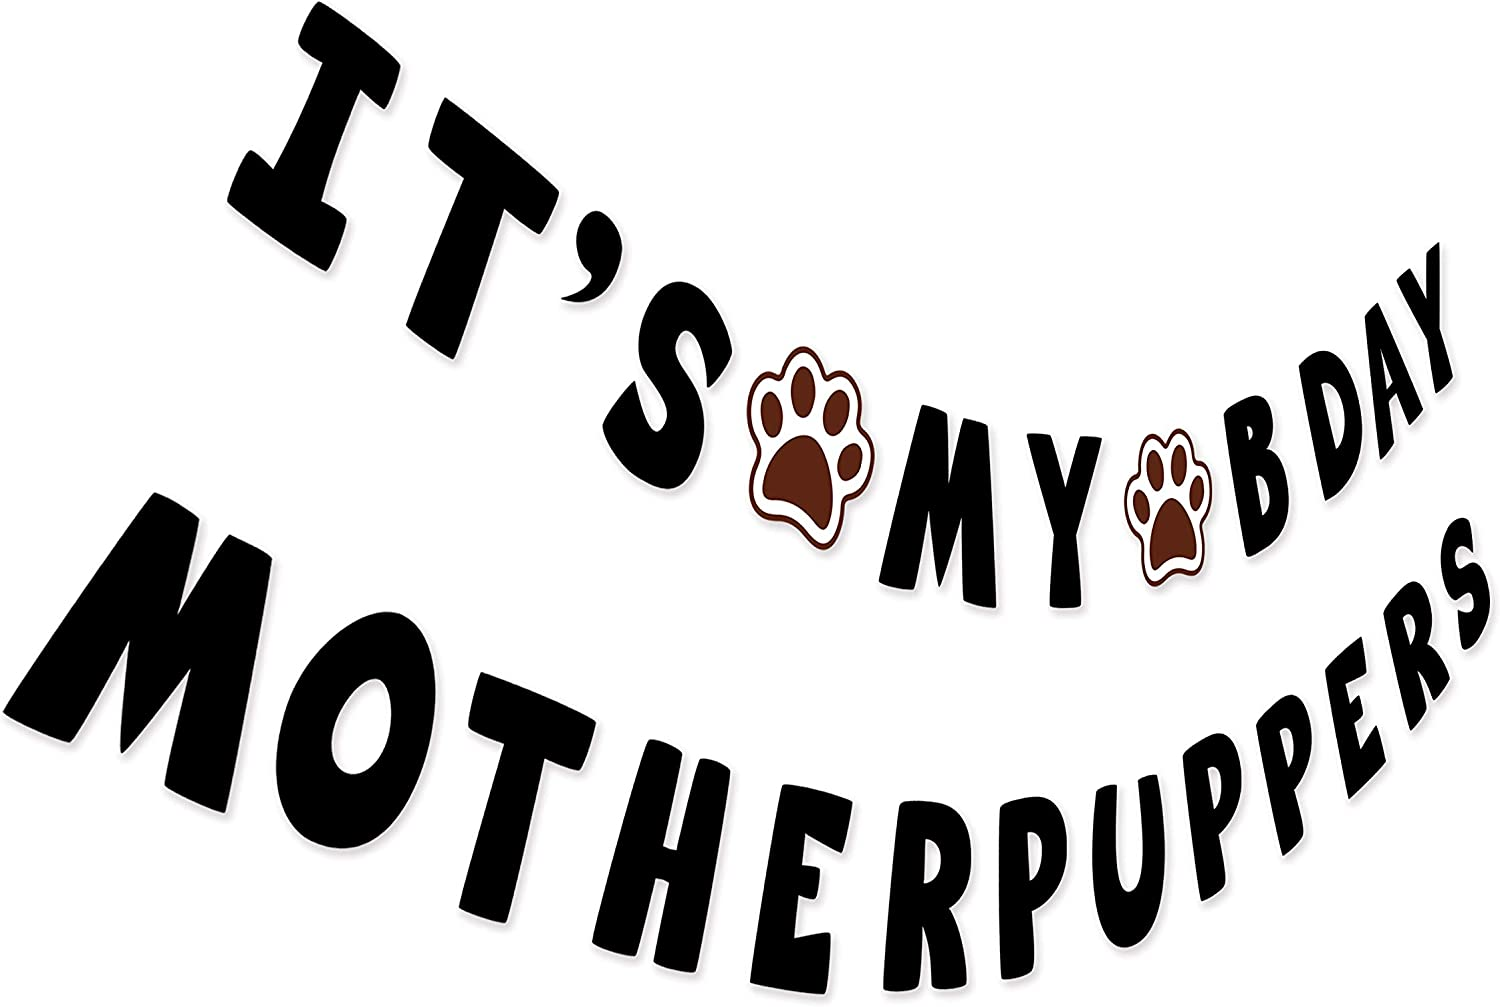 Dog Birthday Banner Decorations Gold Glitter Its My Birthday Mother Puppers Banner for Dog Birthday Party Decorations Supplies